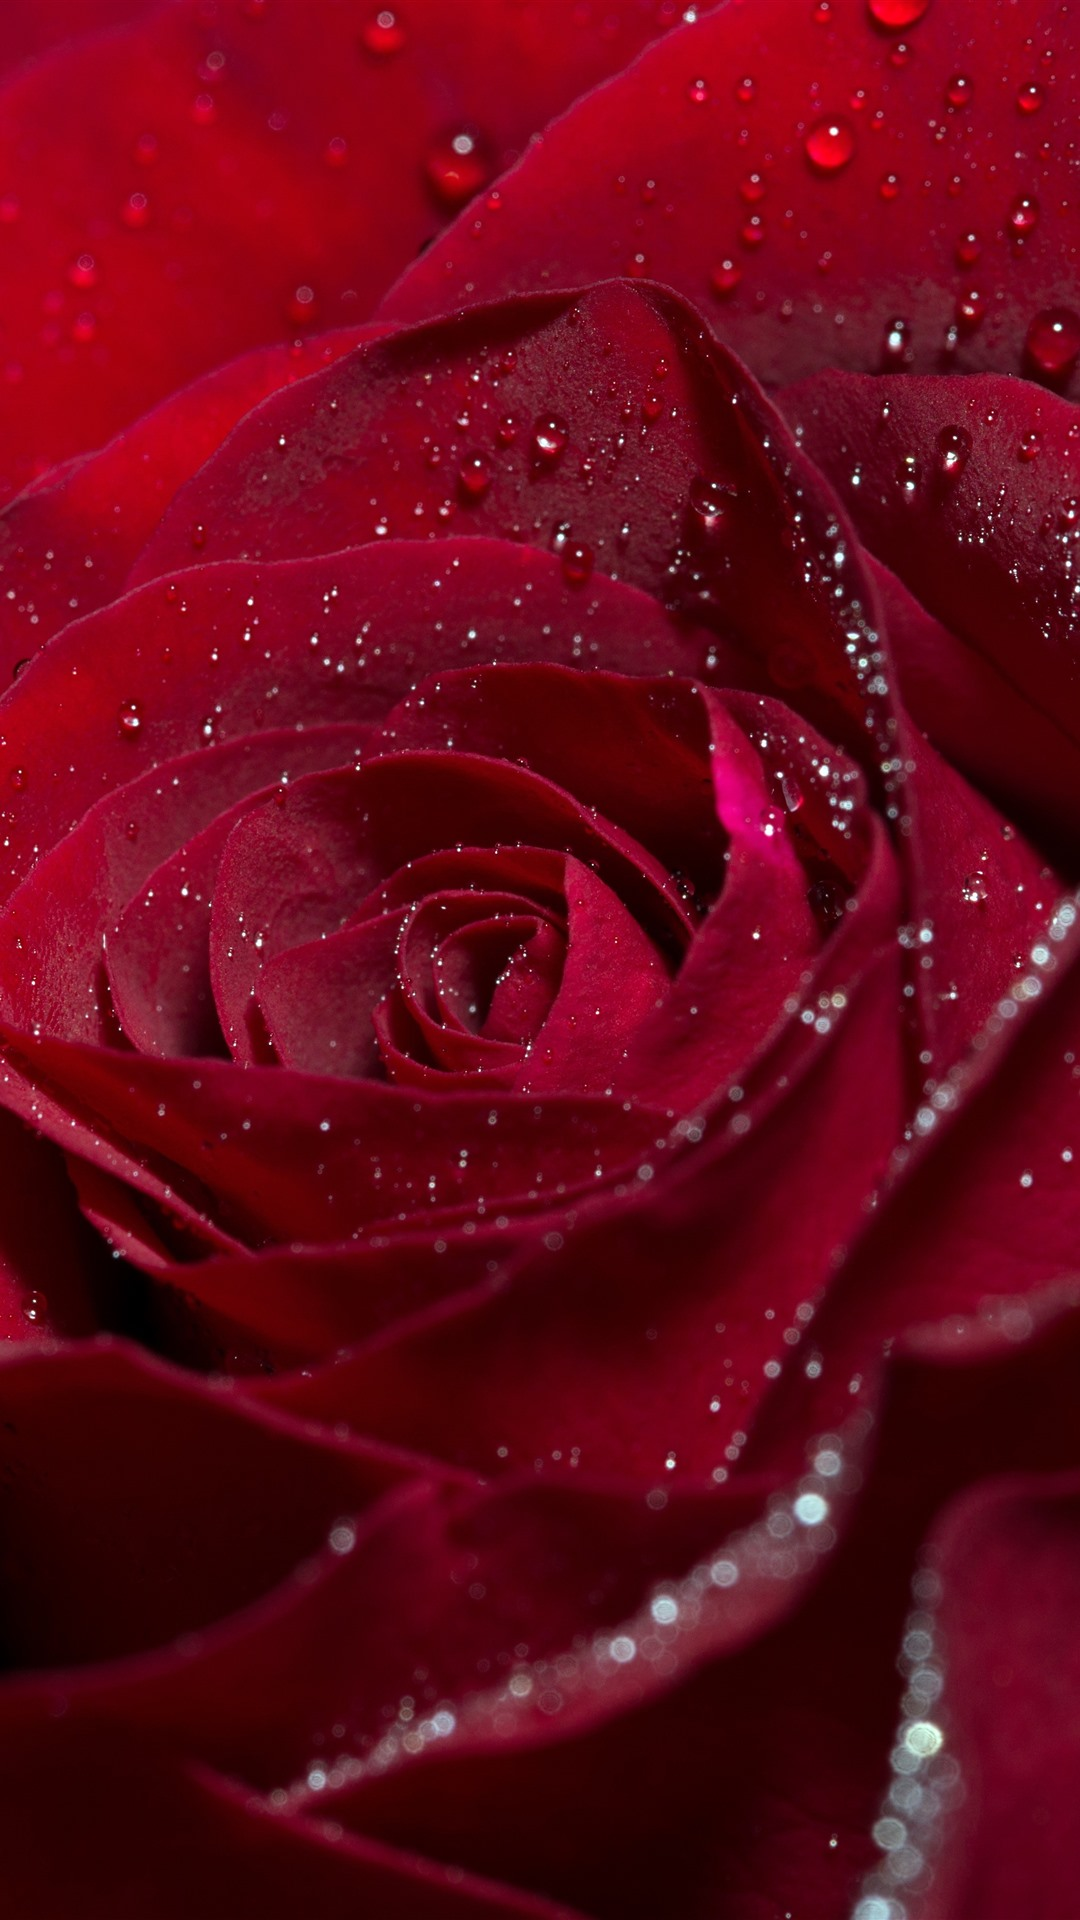 Red Rose Flower Petals Water Droplets 1242x2688 Iphone Xs